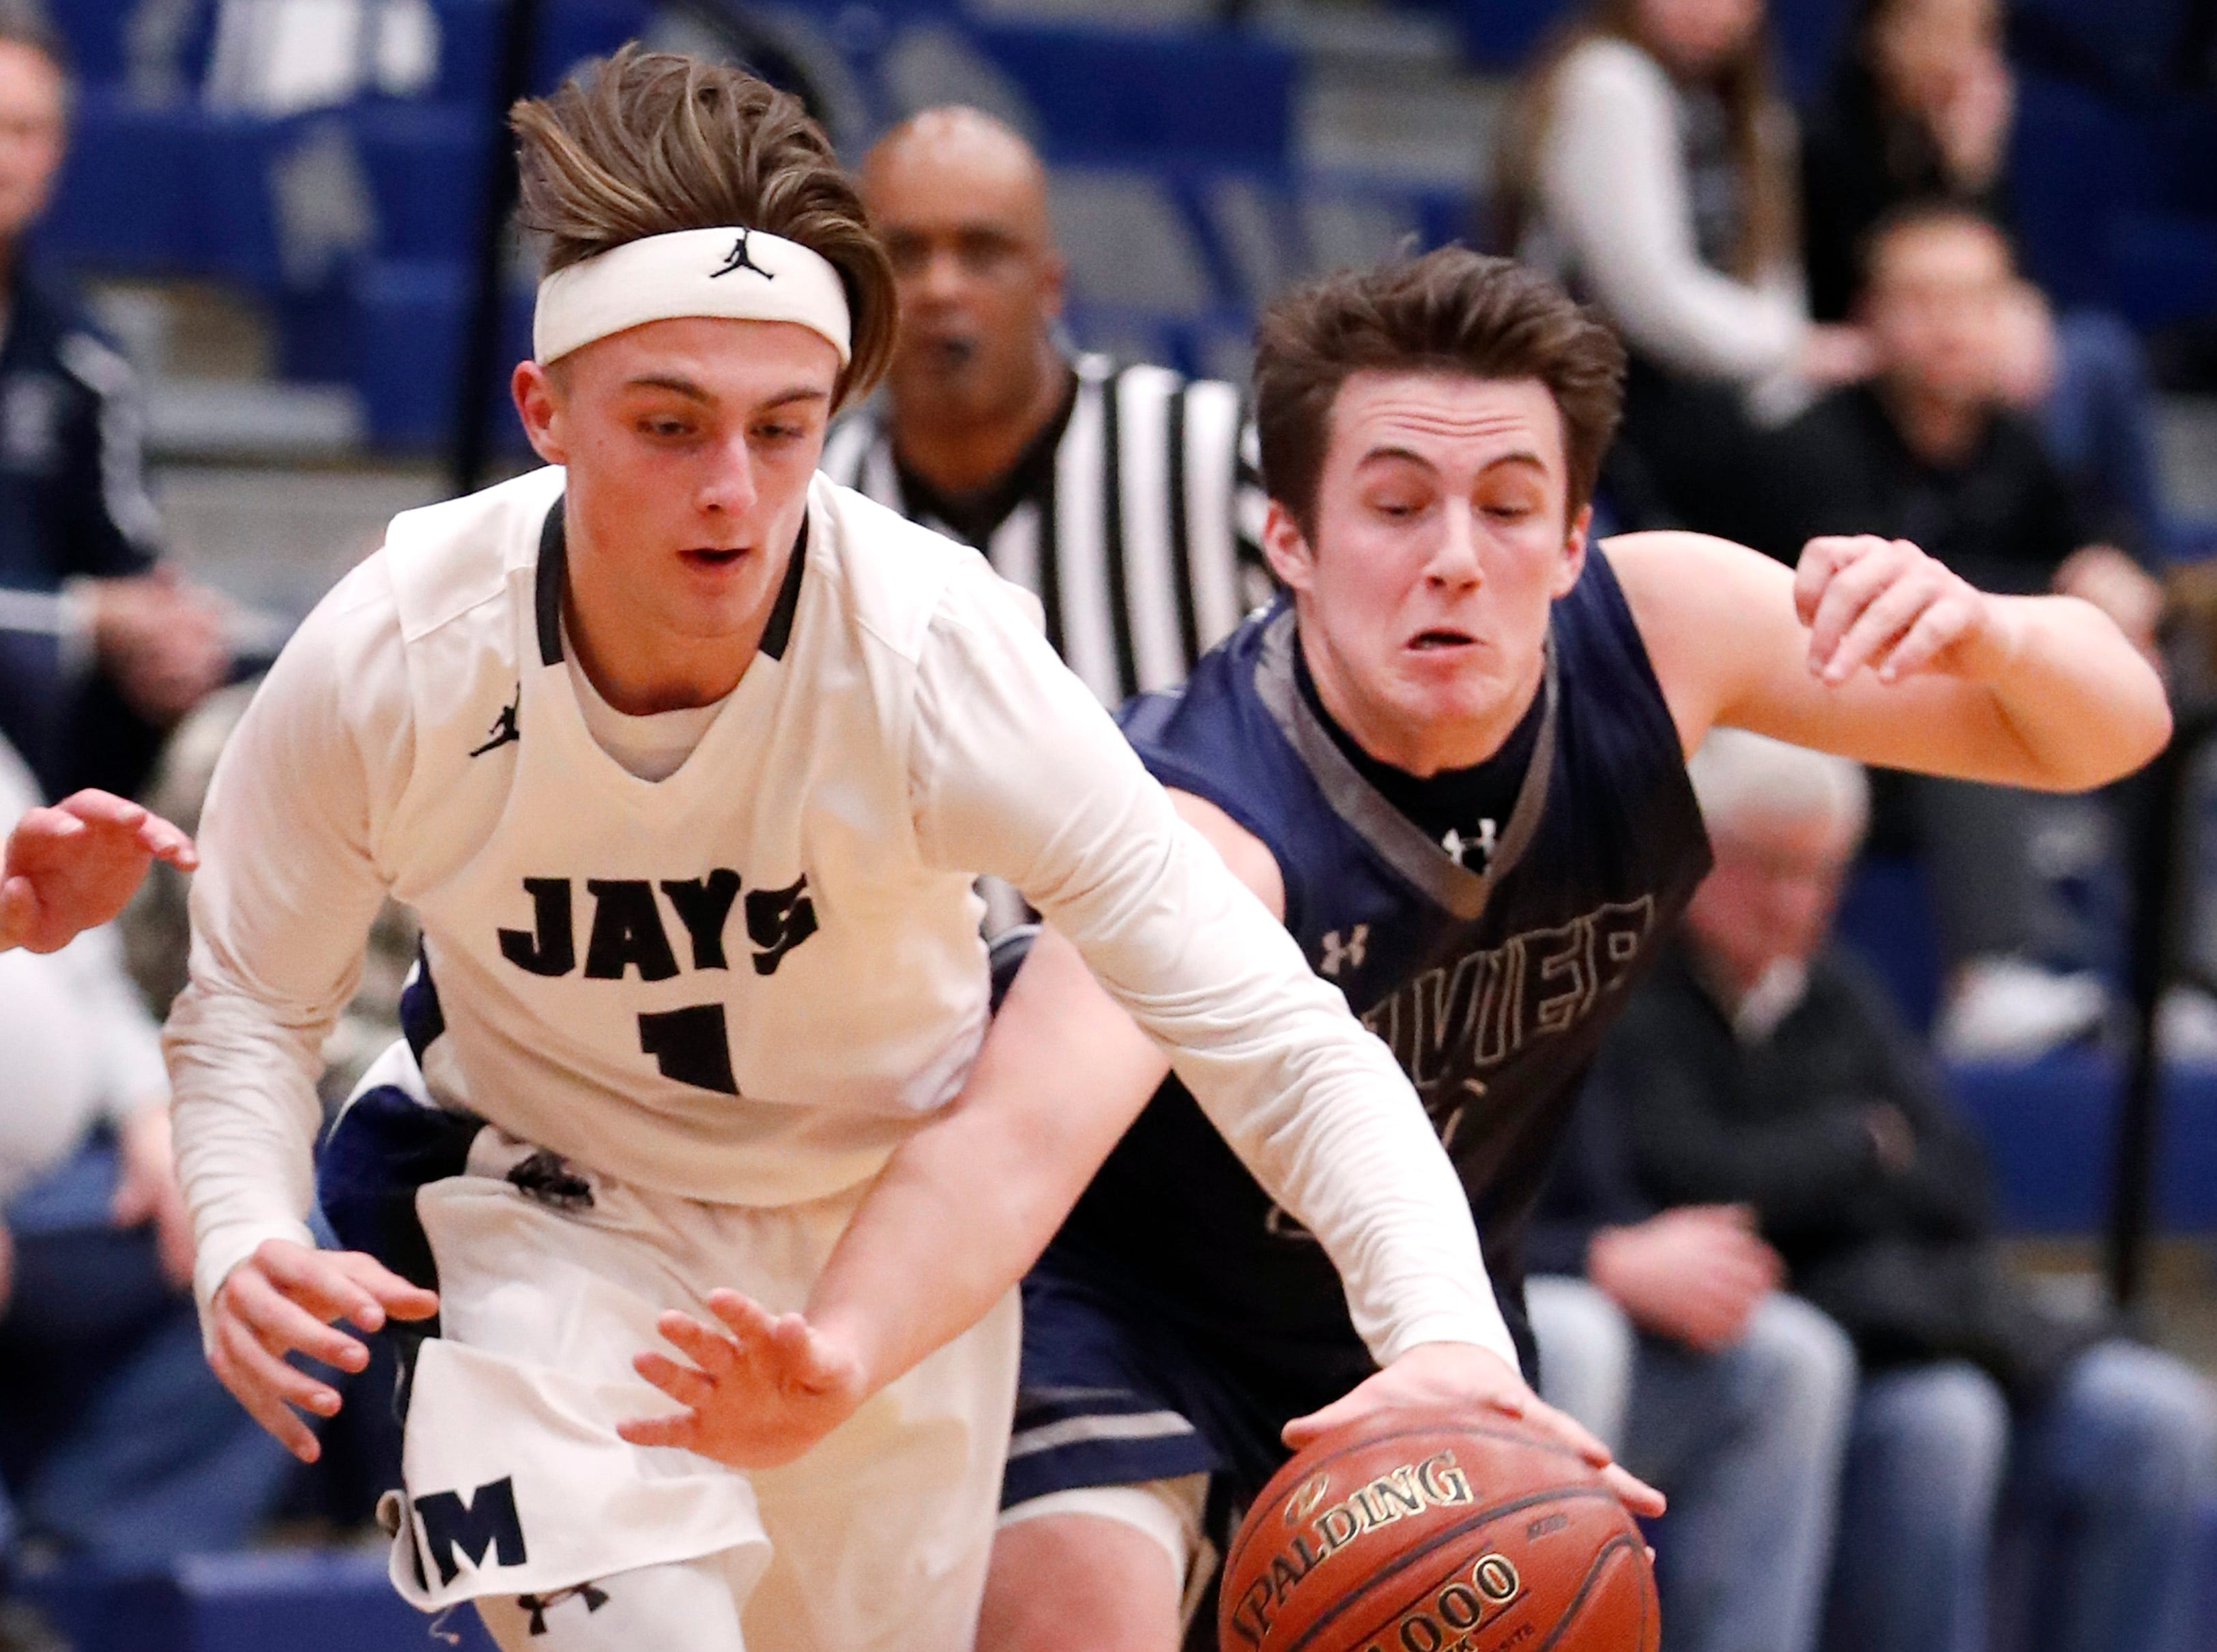 Menasha High SchoolÕs Jay Pawlowski and Xavier High SchoolÕs Henry Egan work to gain control of the ball Thursday, Jan. 17, 2019, in Menasha, Wis. Xavier High School defeated Menasha High School 71-61.